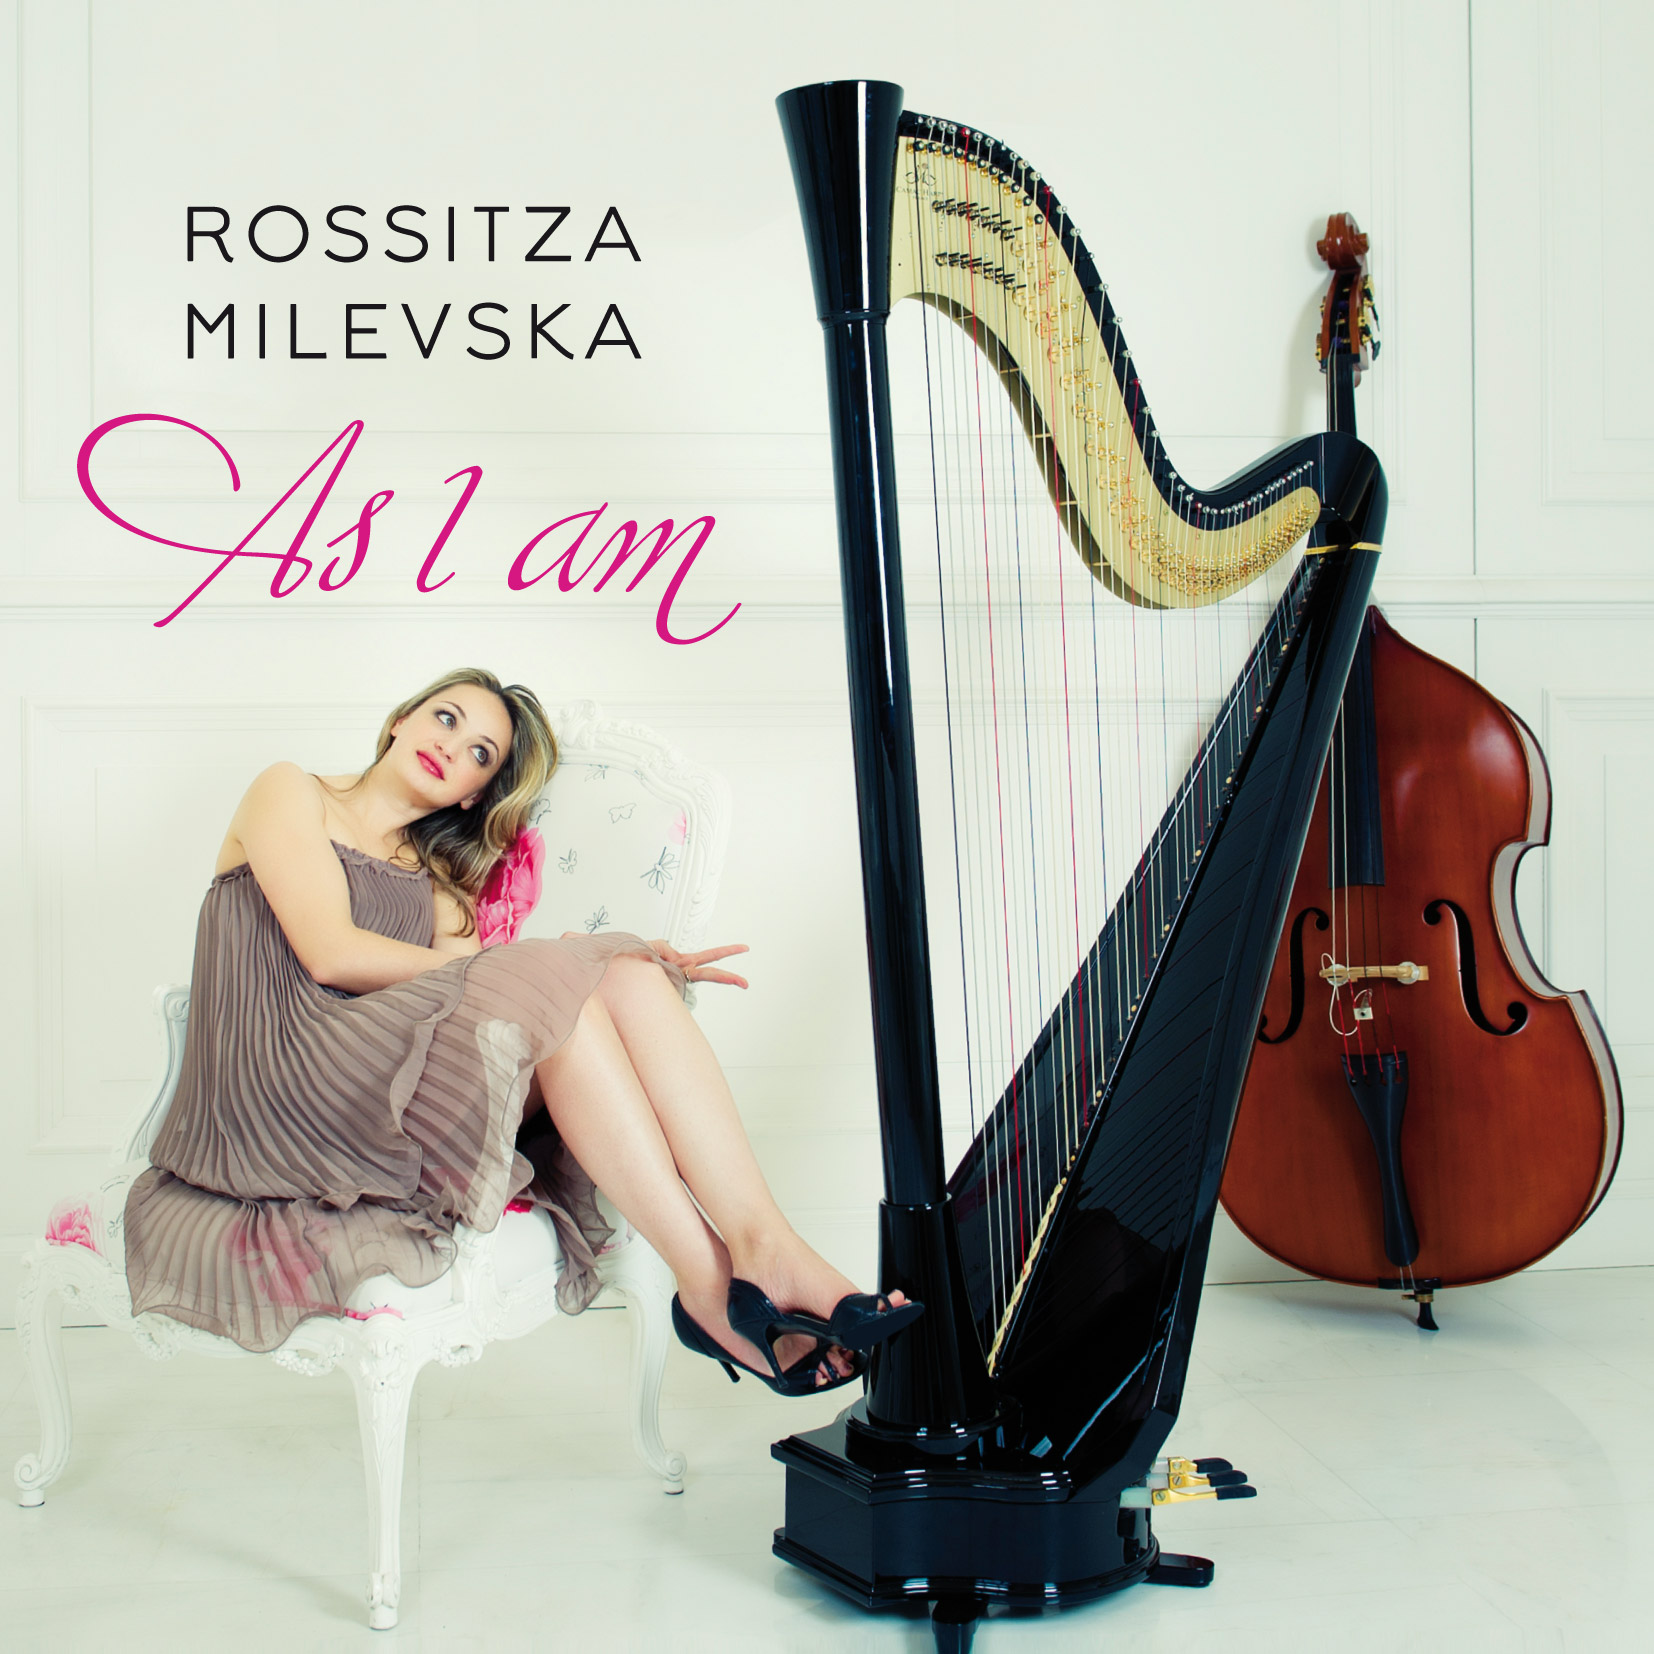 as I am, album by rossitza milevska, harpist composer singer